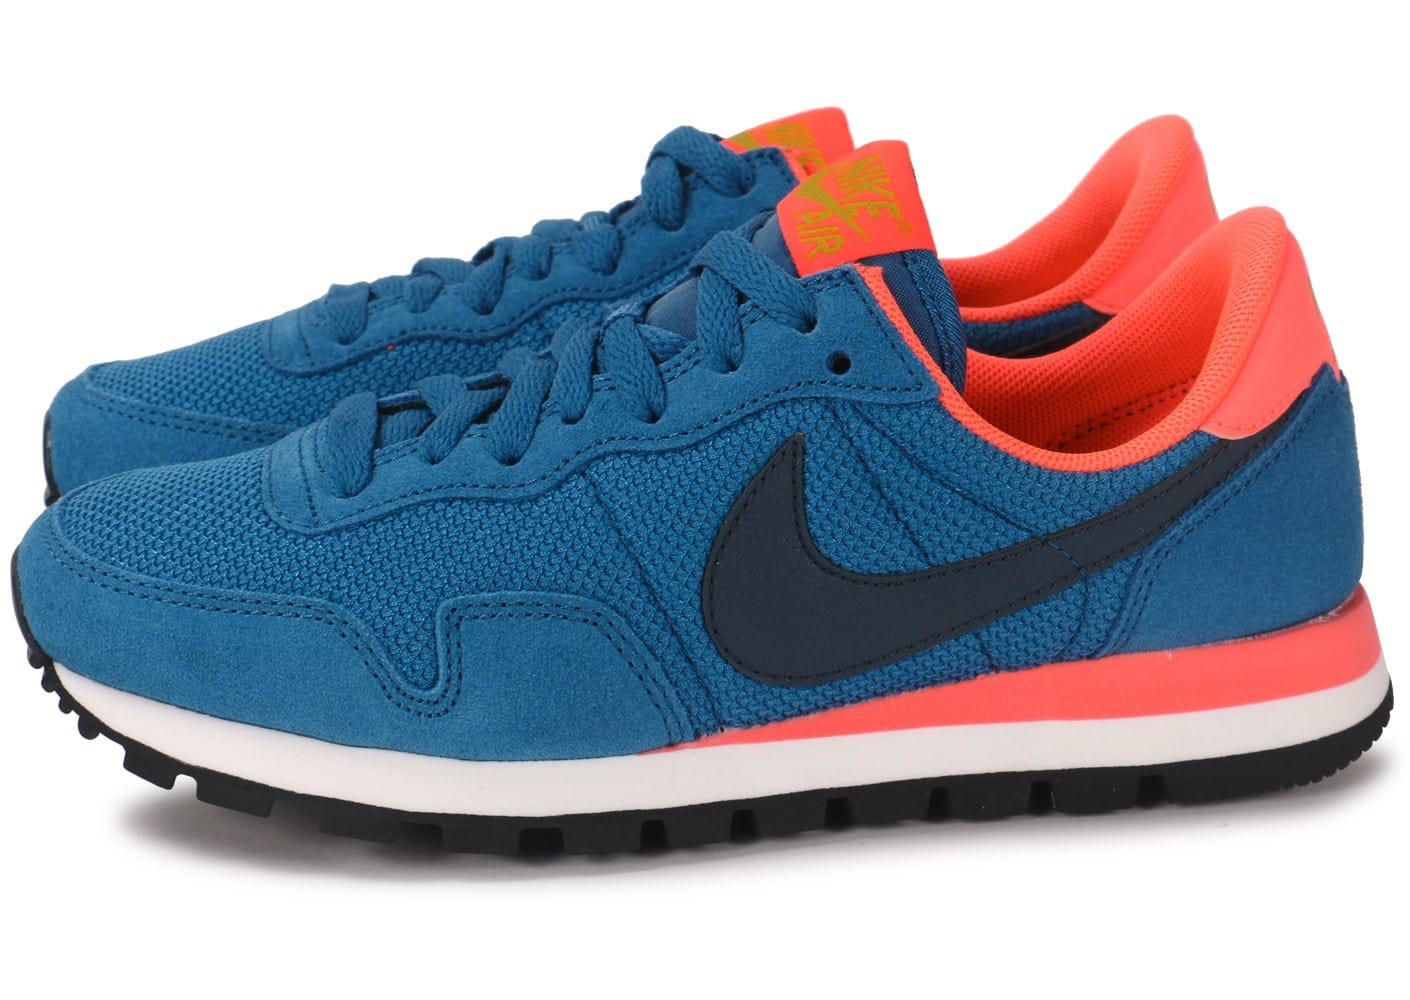 Chaussures de Running Entrainement Homme Chaussures Nike Air Pegasus turquoise Casual homme Chaussures de Running Compétition